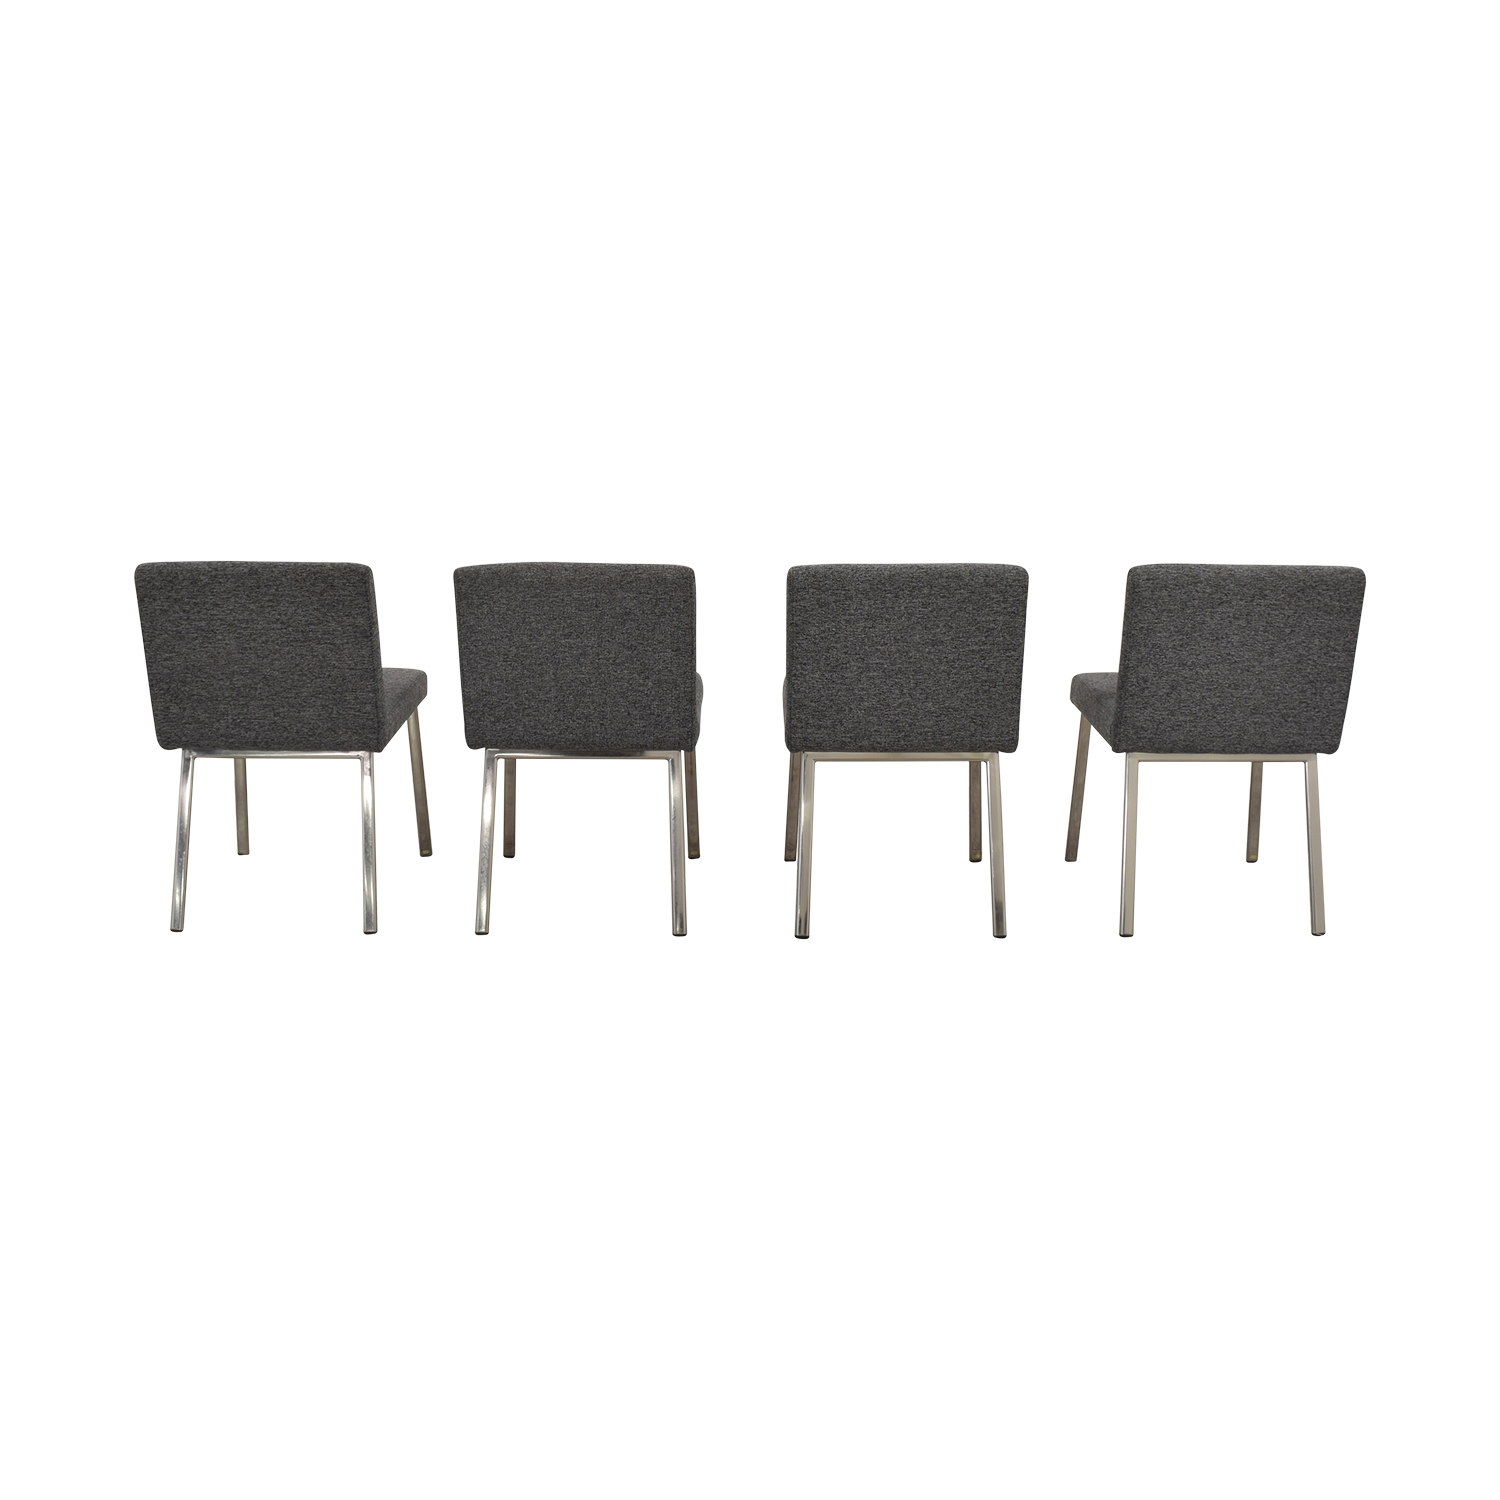 CB2 CB2 Functional Dining Room Chairs on sale